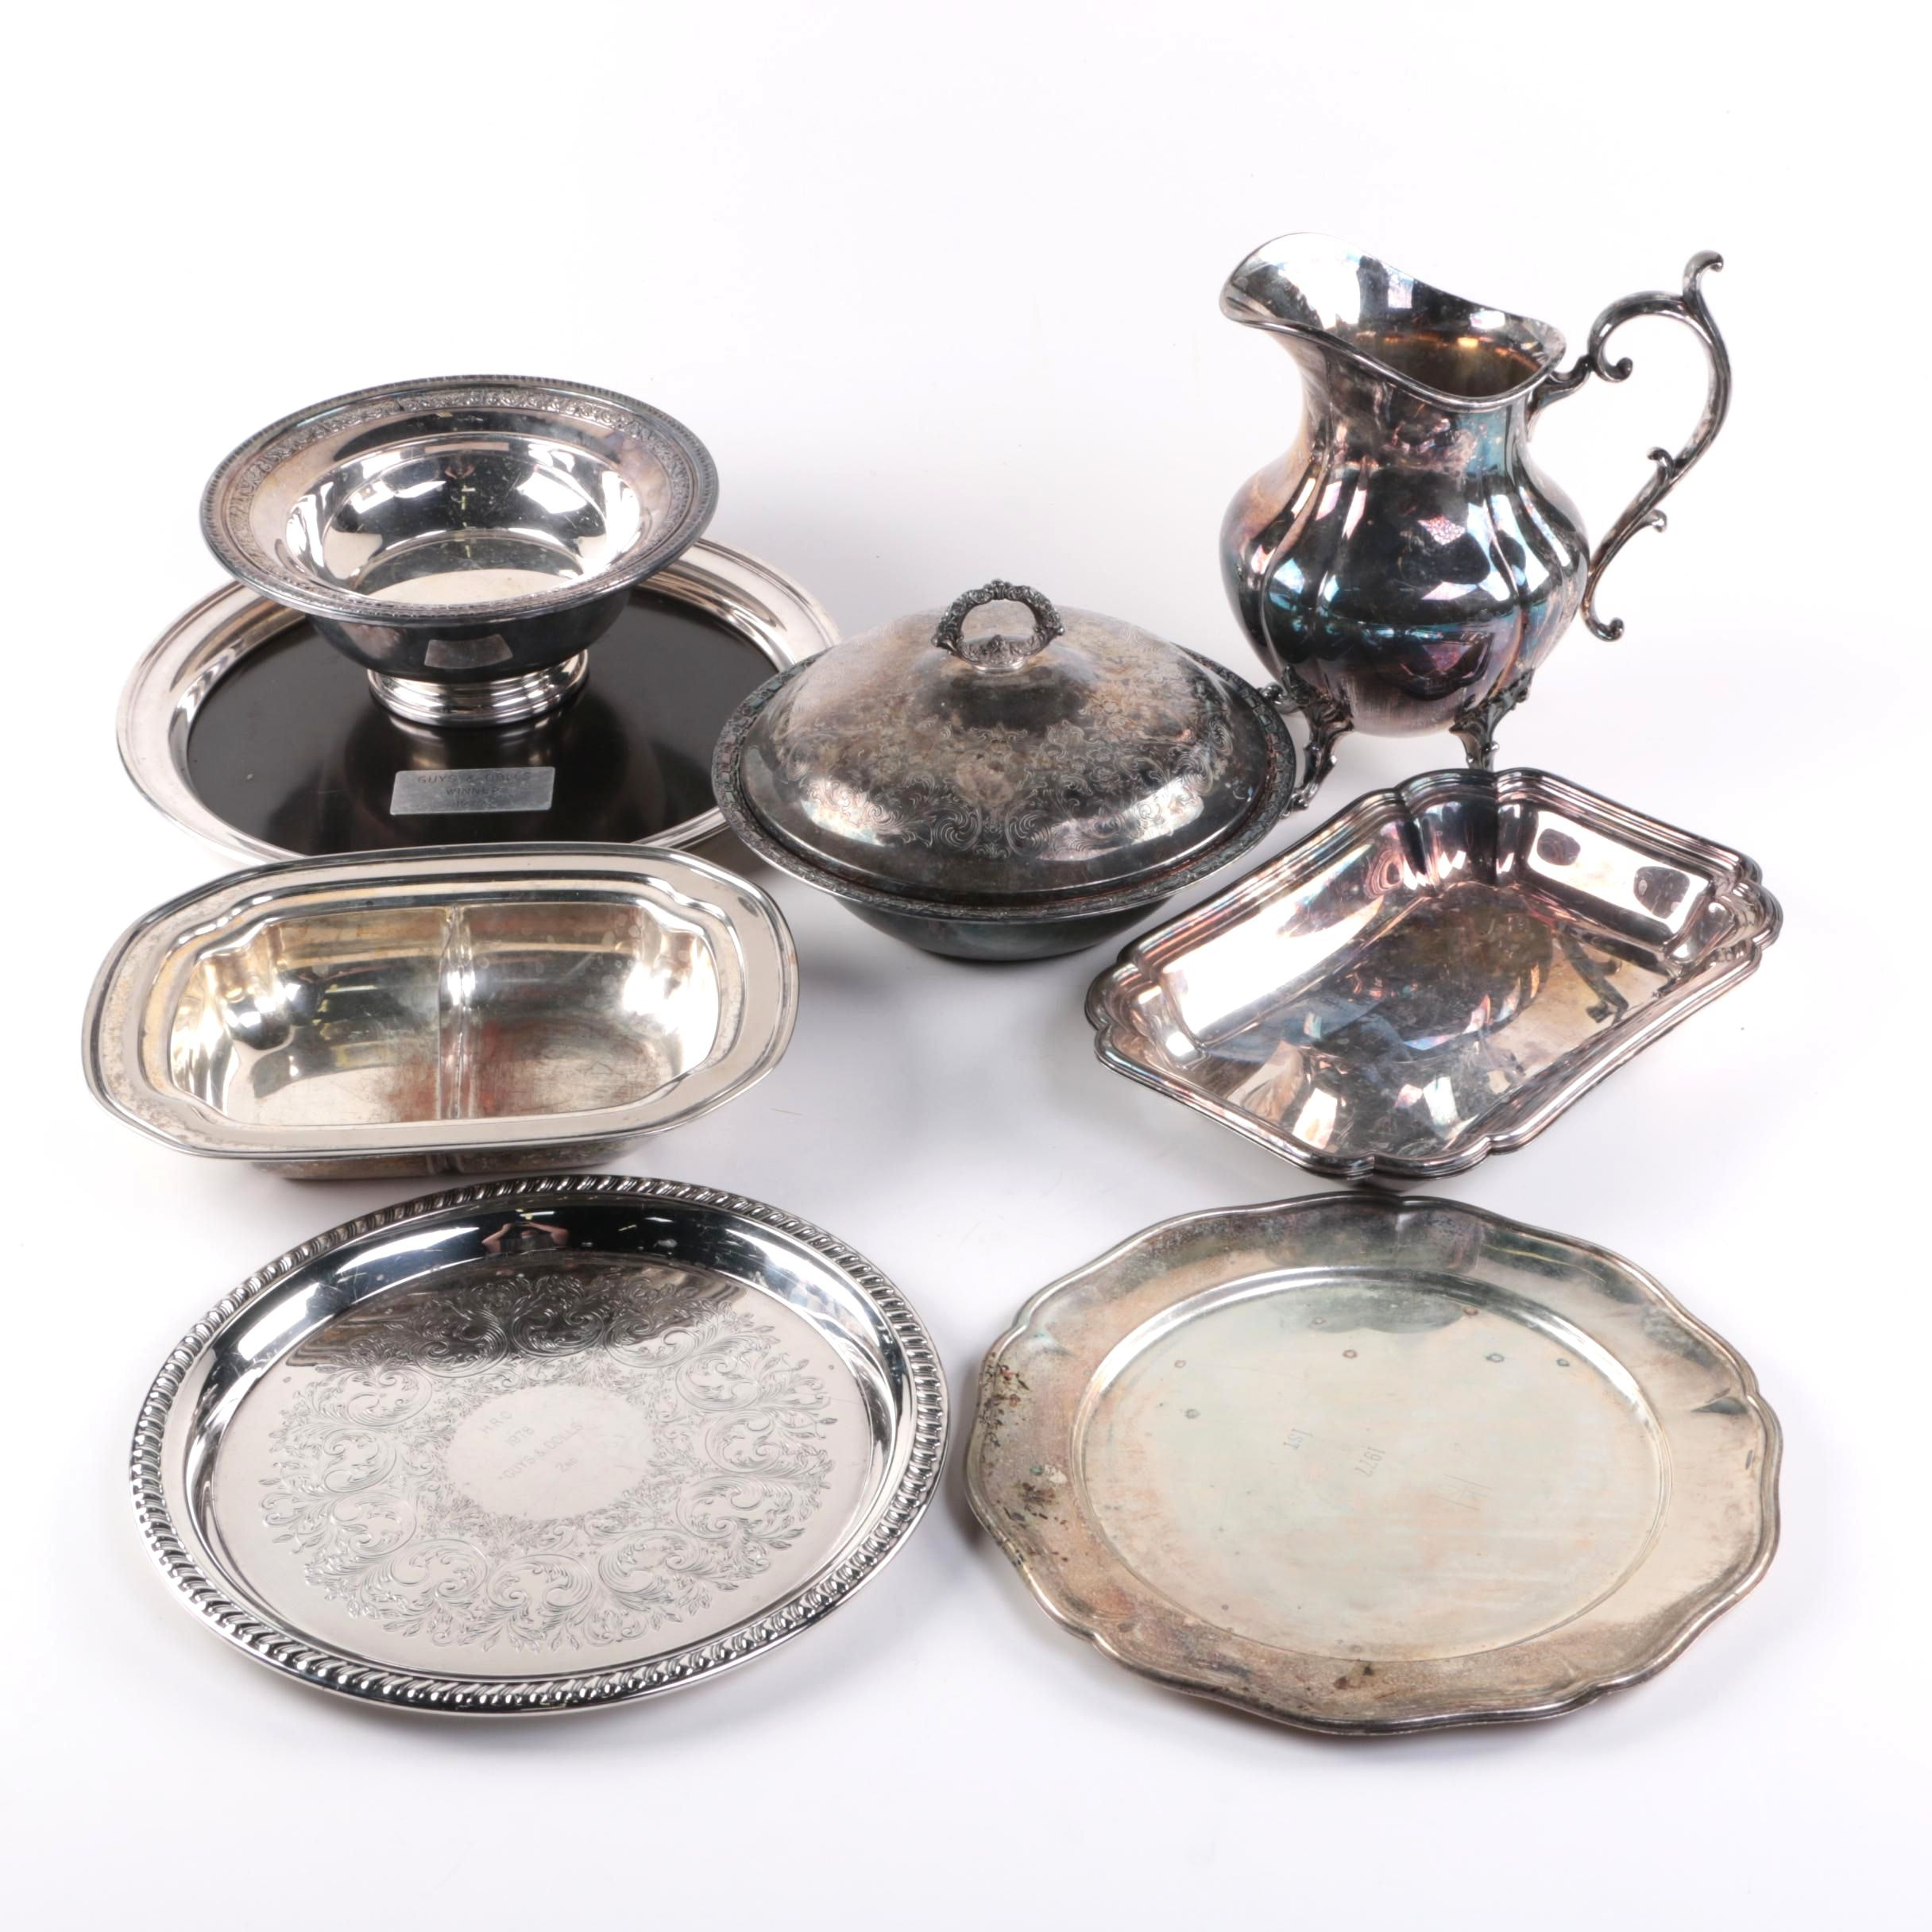 Plated Silver Serveware with Gorham